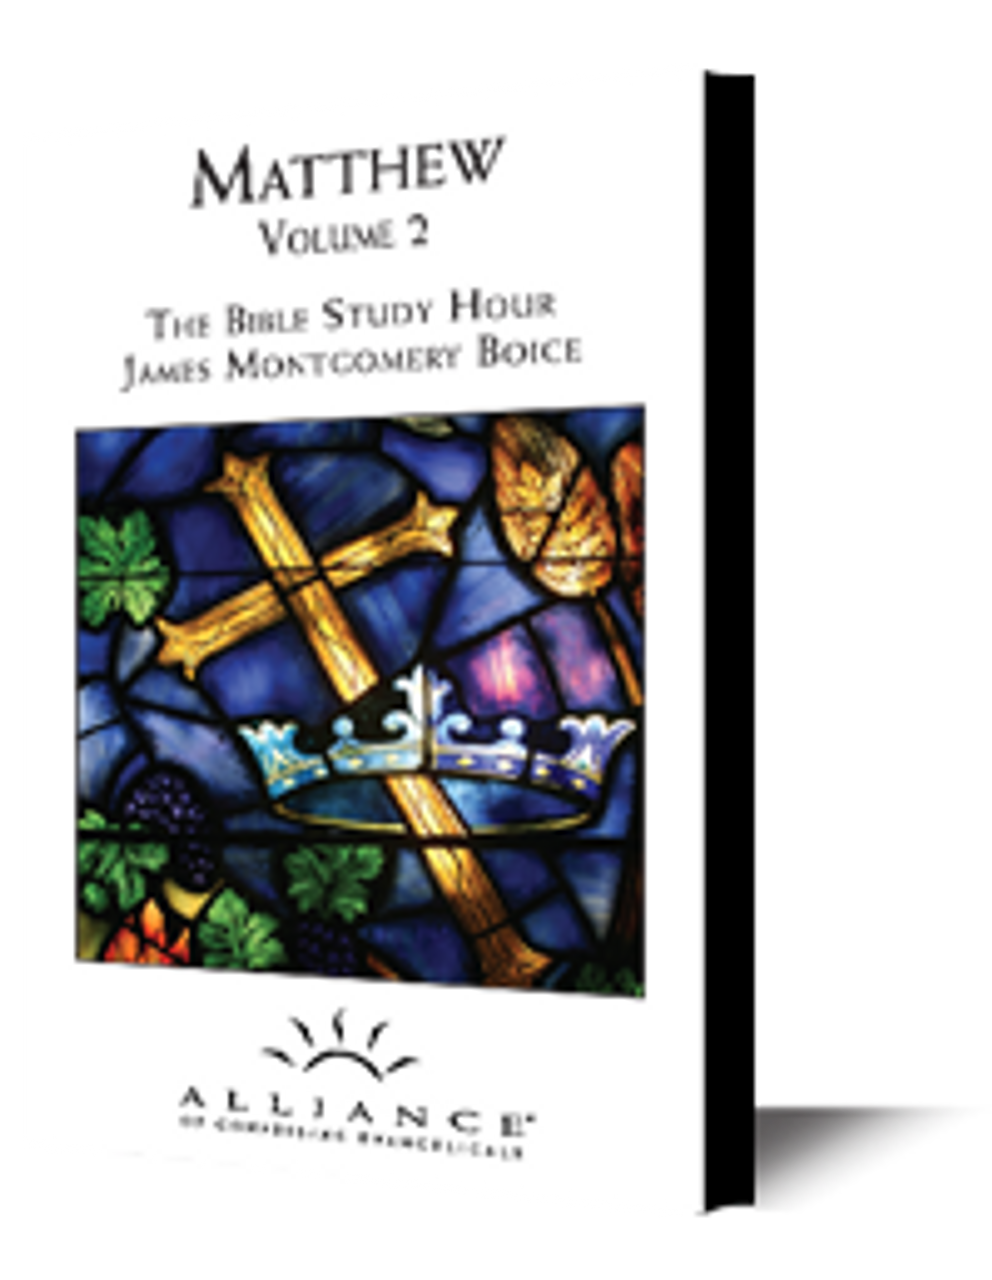 Matthew, Volume 2 (CD Set)